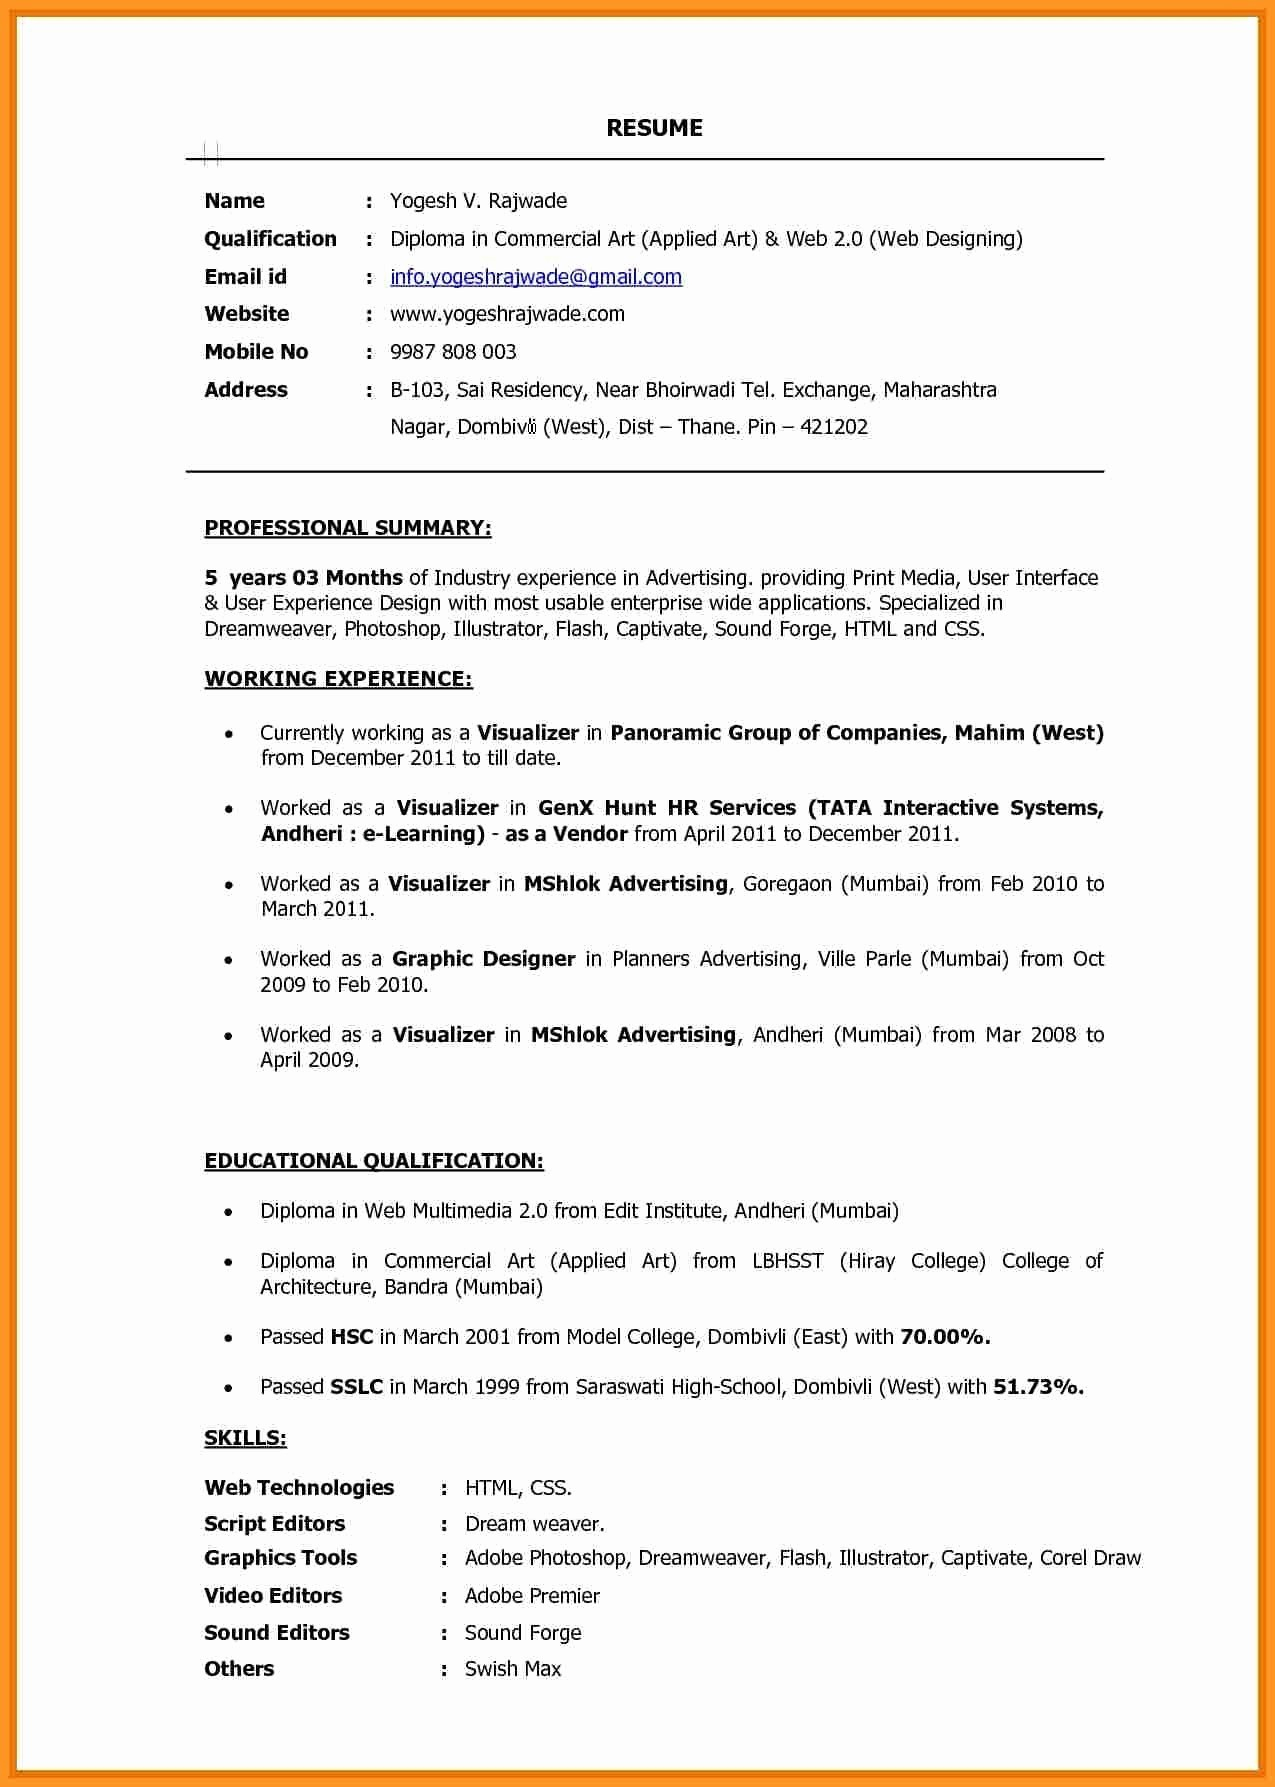 ux resume template Collection-Beautiful Resume Puter Skills Examples Fresh Od Specialist Sample 5-e